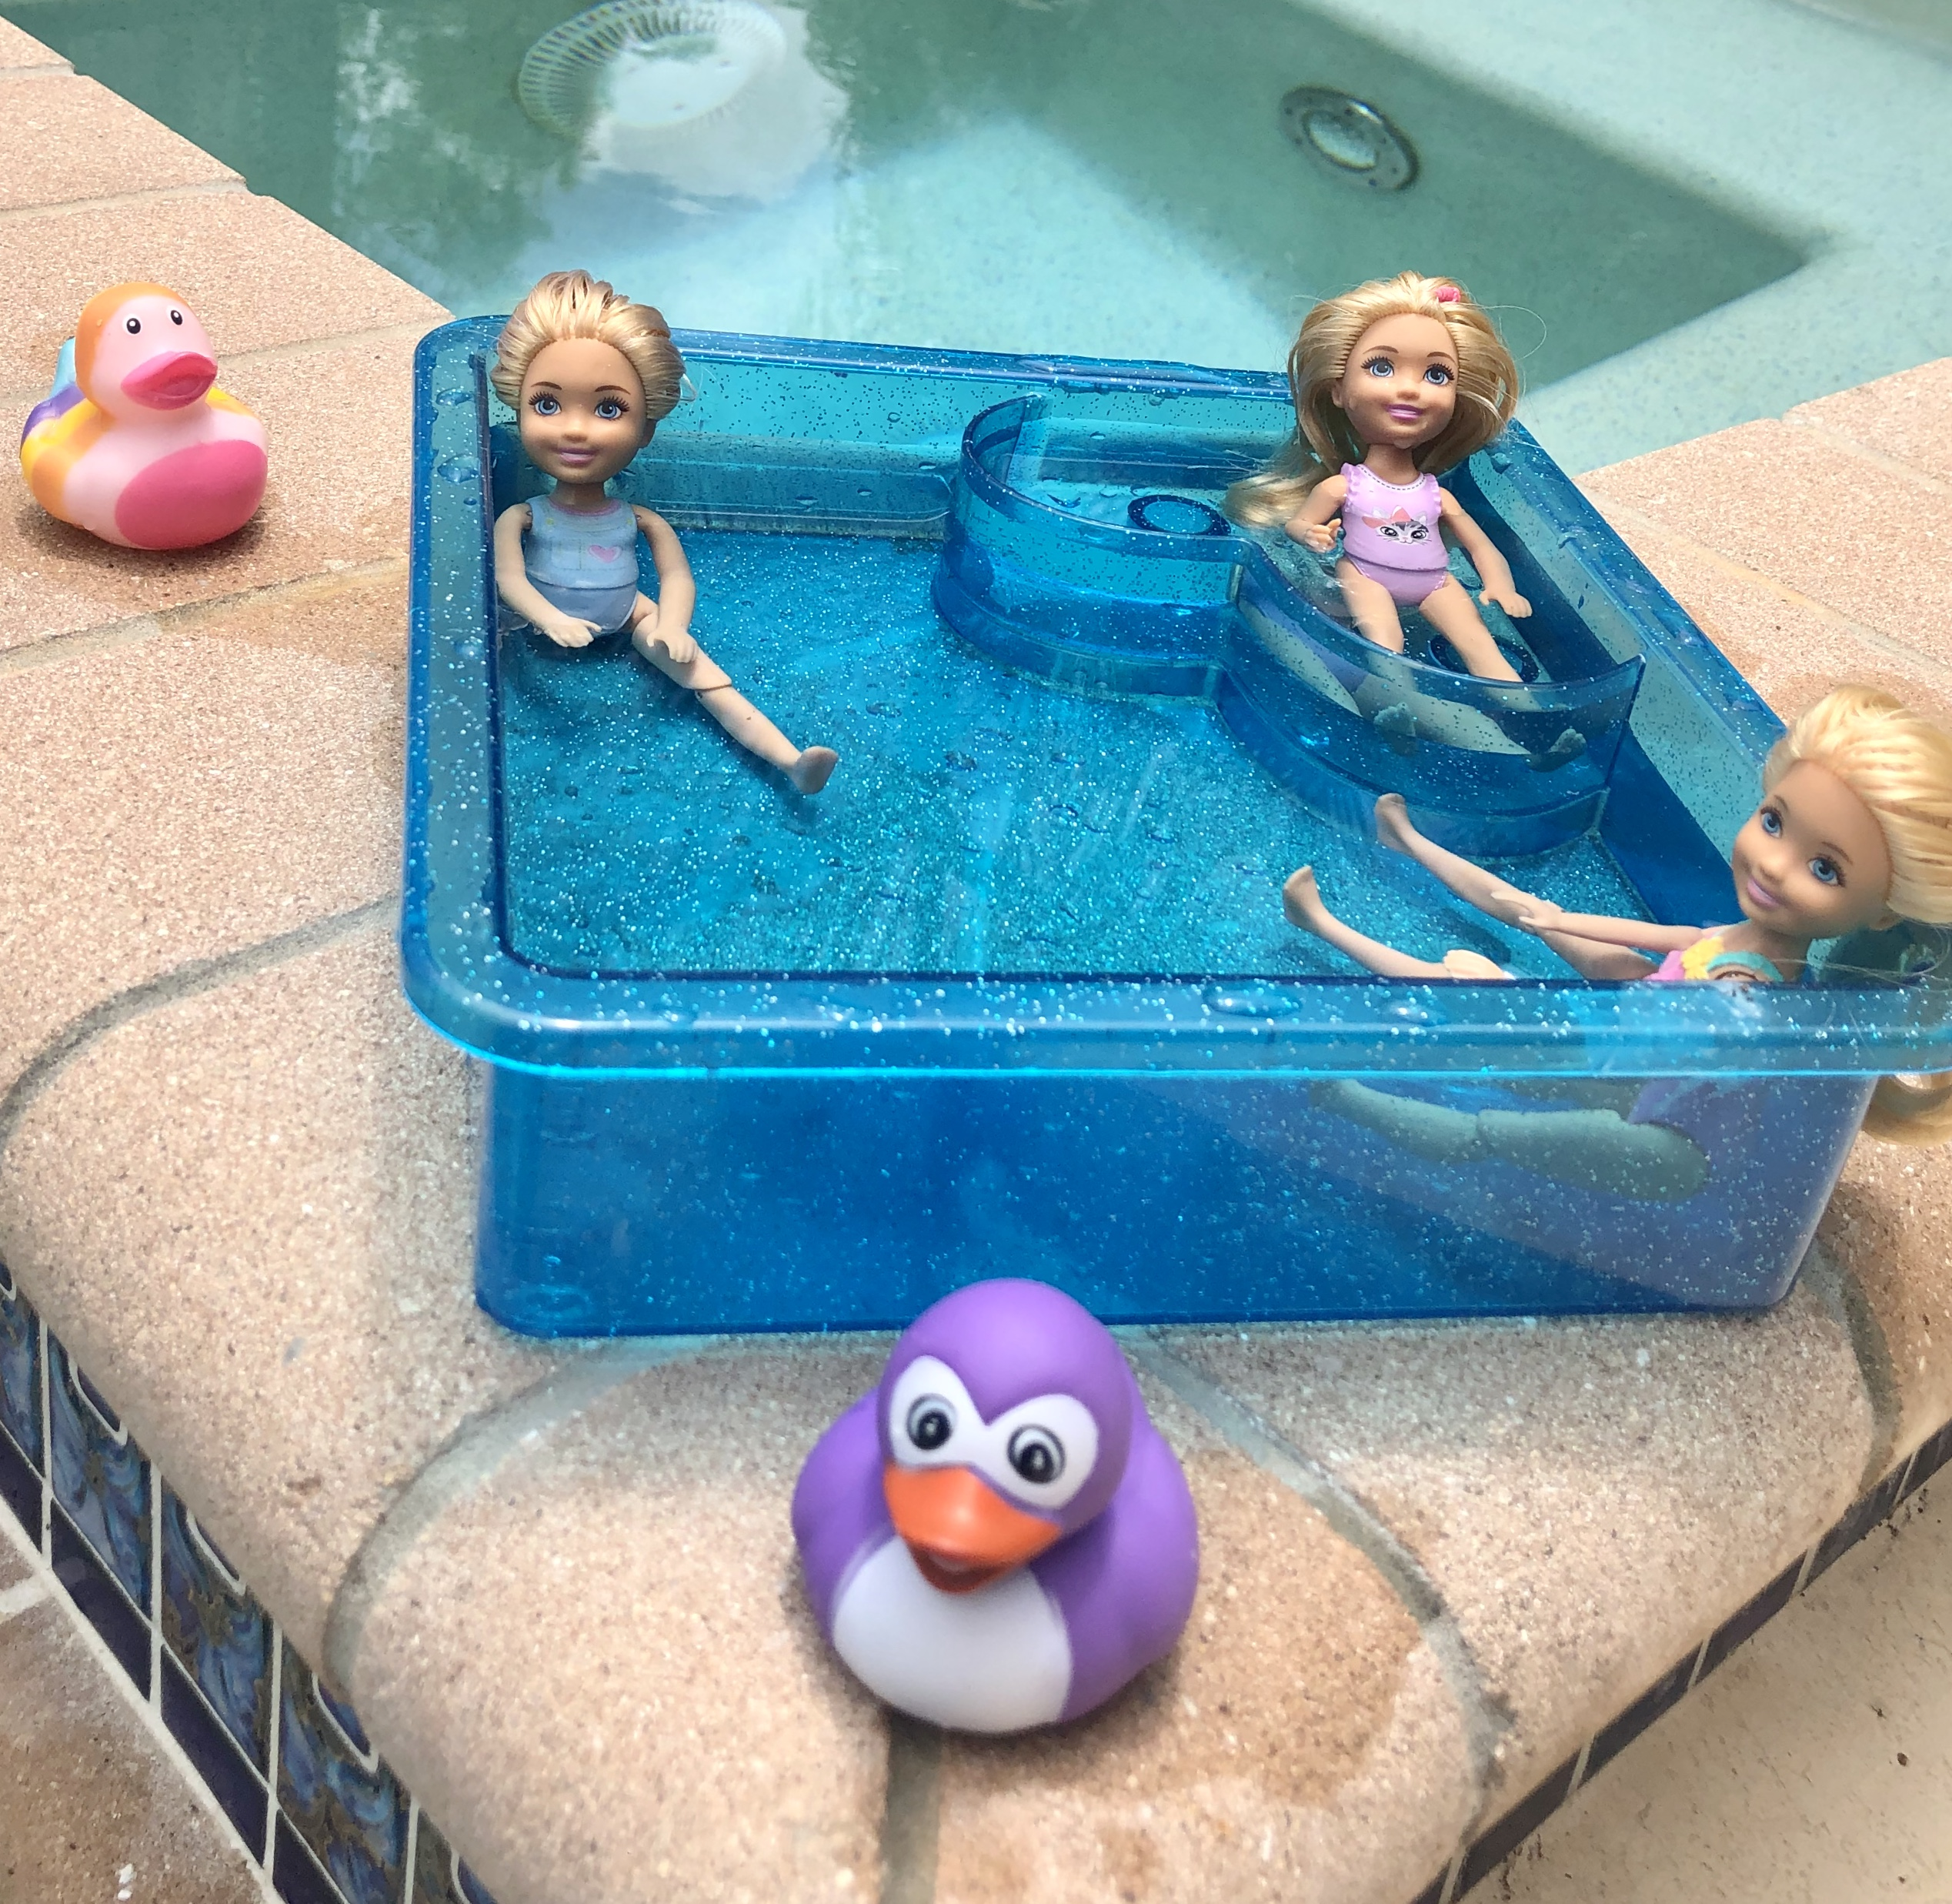 3 Chelsea dolls in a little pool for the Barbie Doll Story, Goodbye Costa Rica.